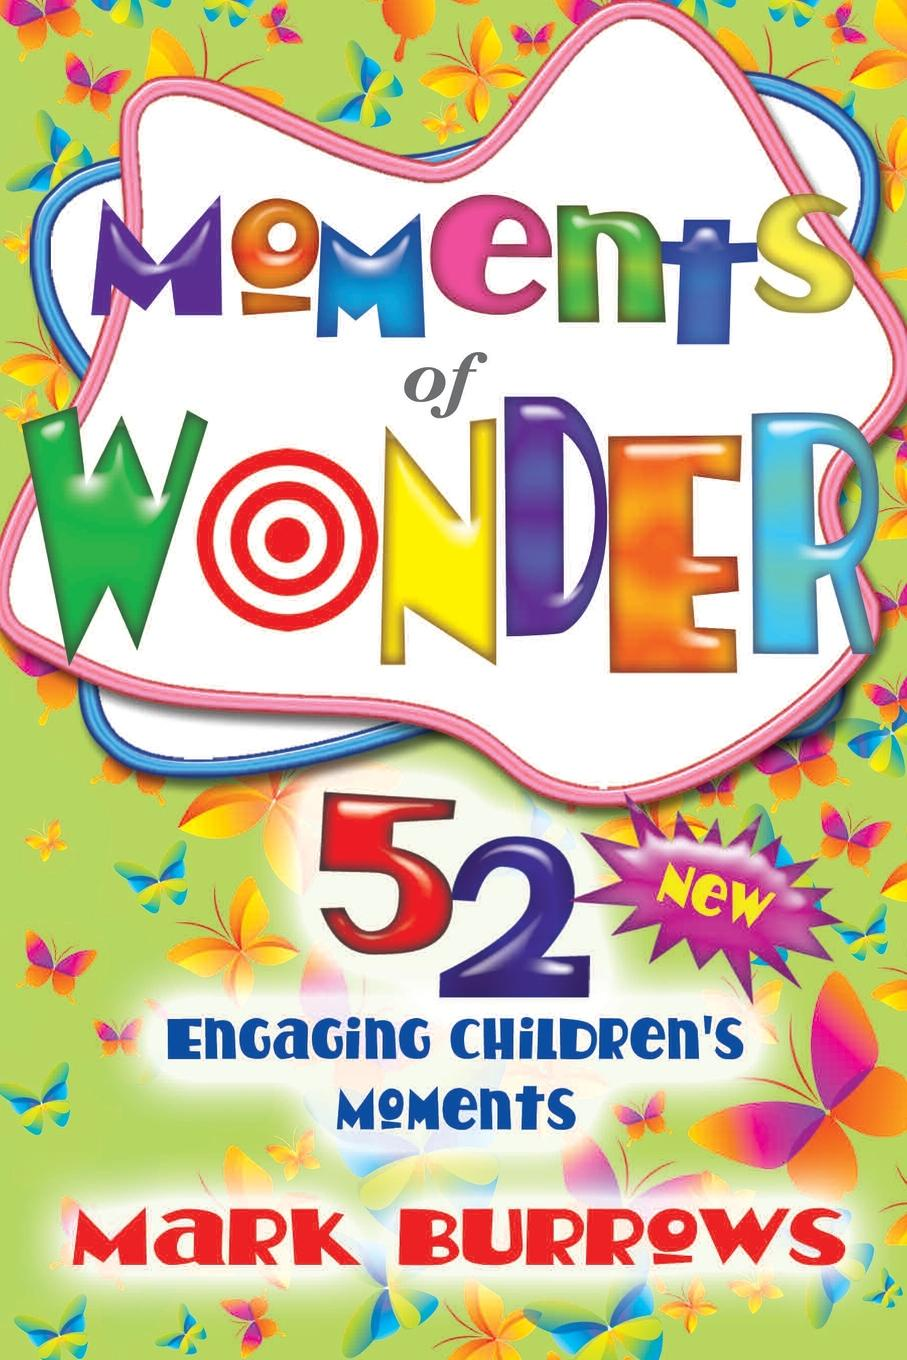 Mark Burrows Moments of Wonder. 52 New Engaging Children's Moments